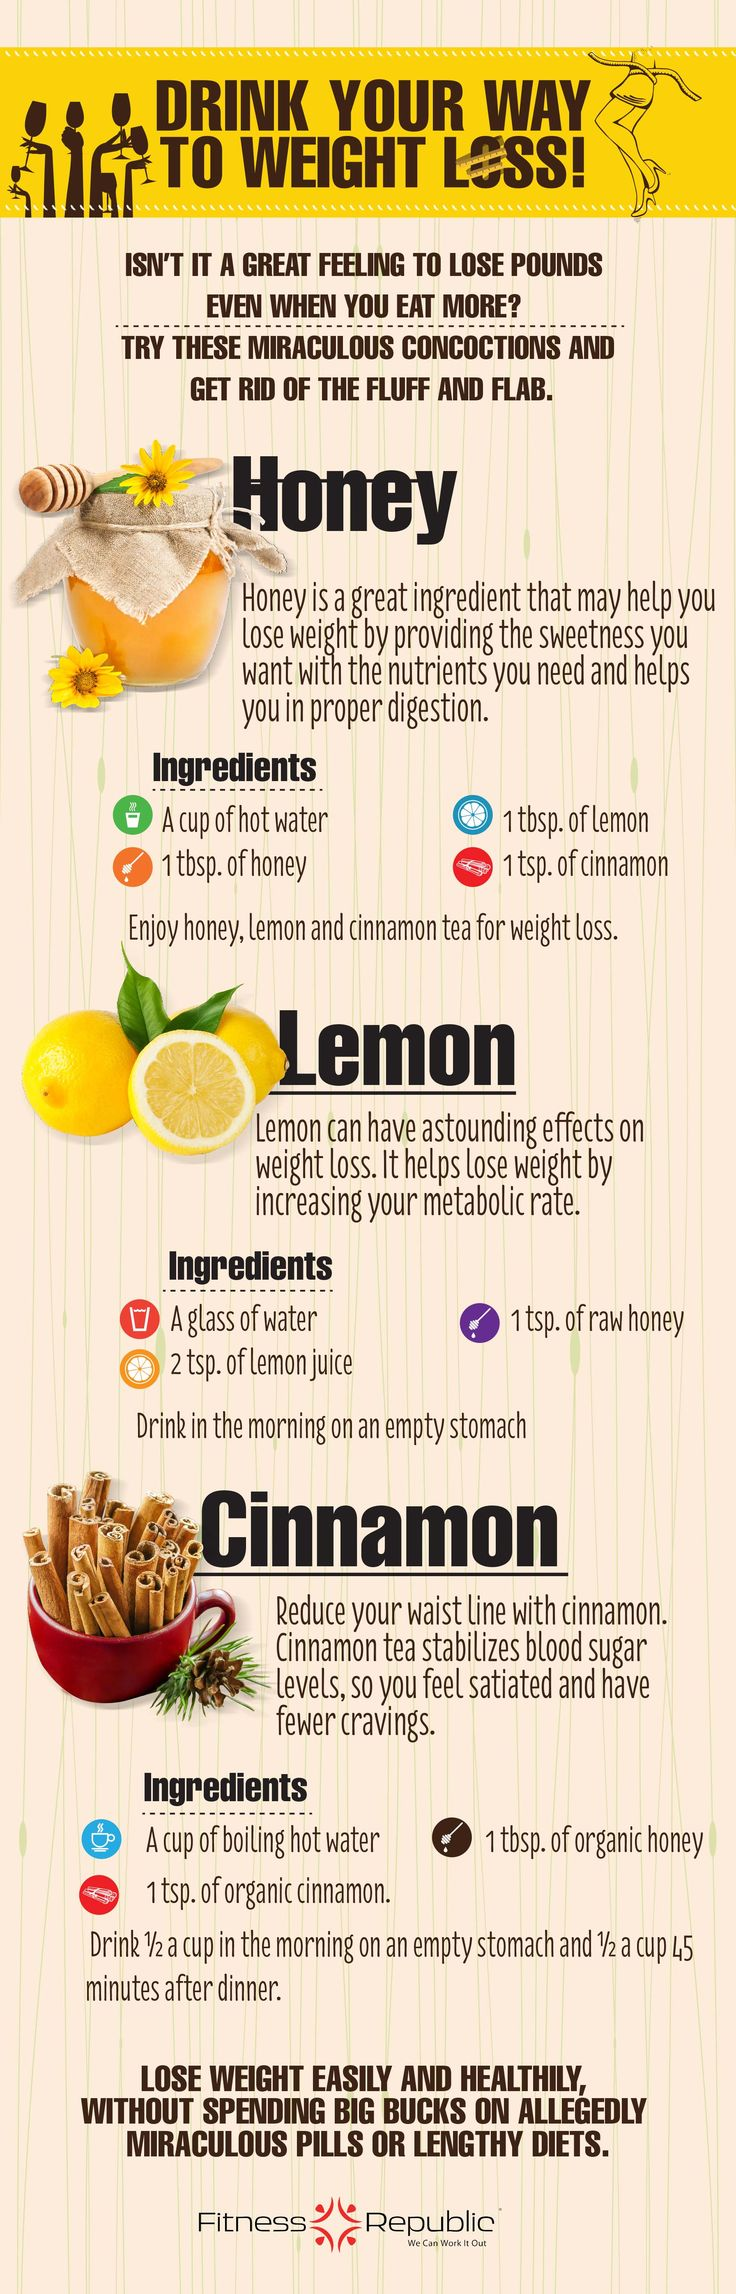 Drink yourself skinny with one of these concoctions: Lose Weight with #Honey, #Lemon and #Cinnamon! http://www.fitnessrepublic.com/nutrition/healthy_eating/honey-cinnamon-lemon-for-weight-loss.html